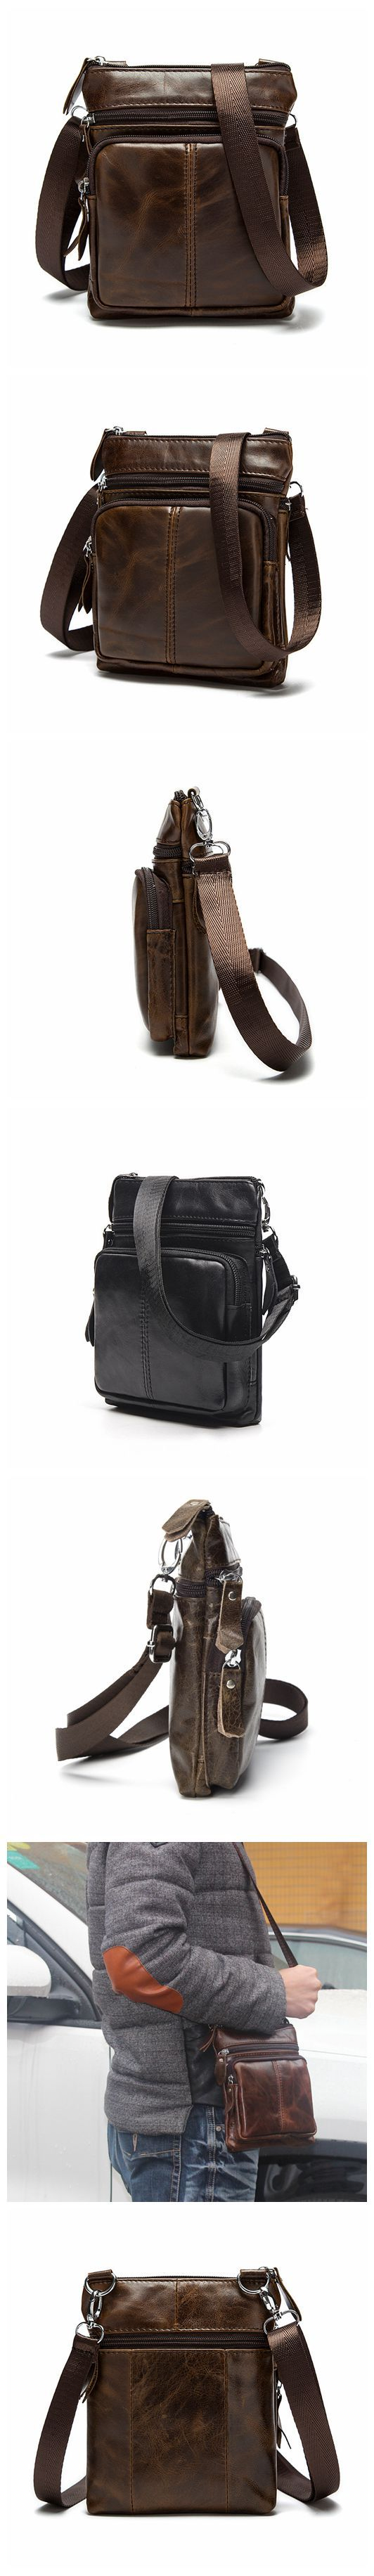 "Men's Top Grain Genuine Leather Zipper Shoulder Bag, Vintage Leisure Small Messenger Bag 701 Model Number: 701 Dimensions: 6.2""L x 1.1""W x 7.8""H / 16cm(L) x 3cm(W) x 20cm(H) Weight: 0.4lb / 0.5kg Hard"